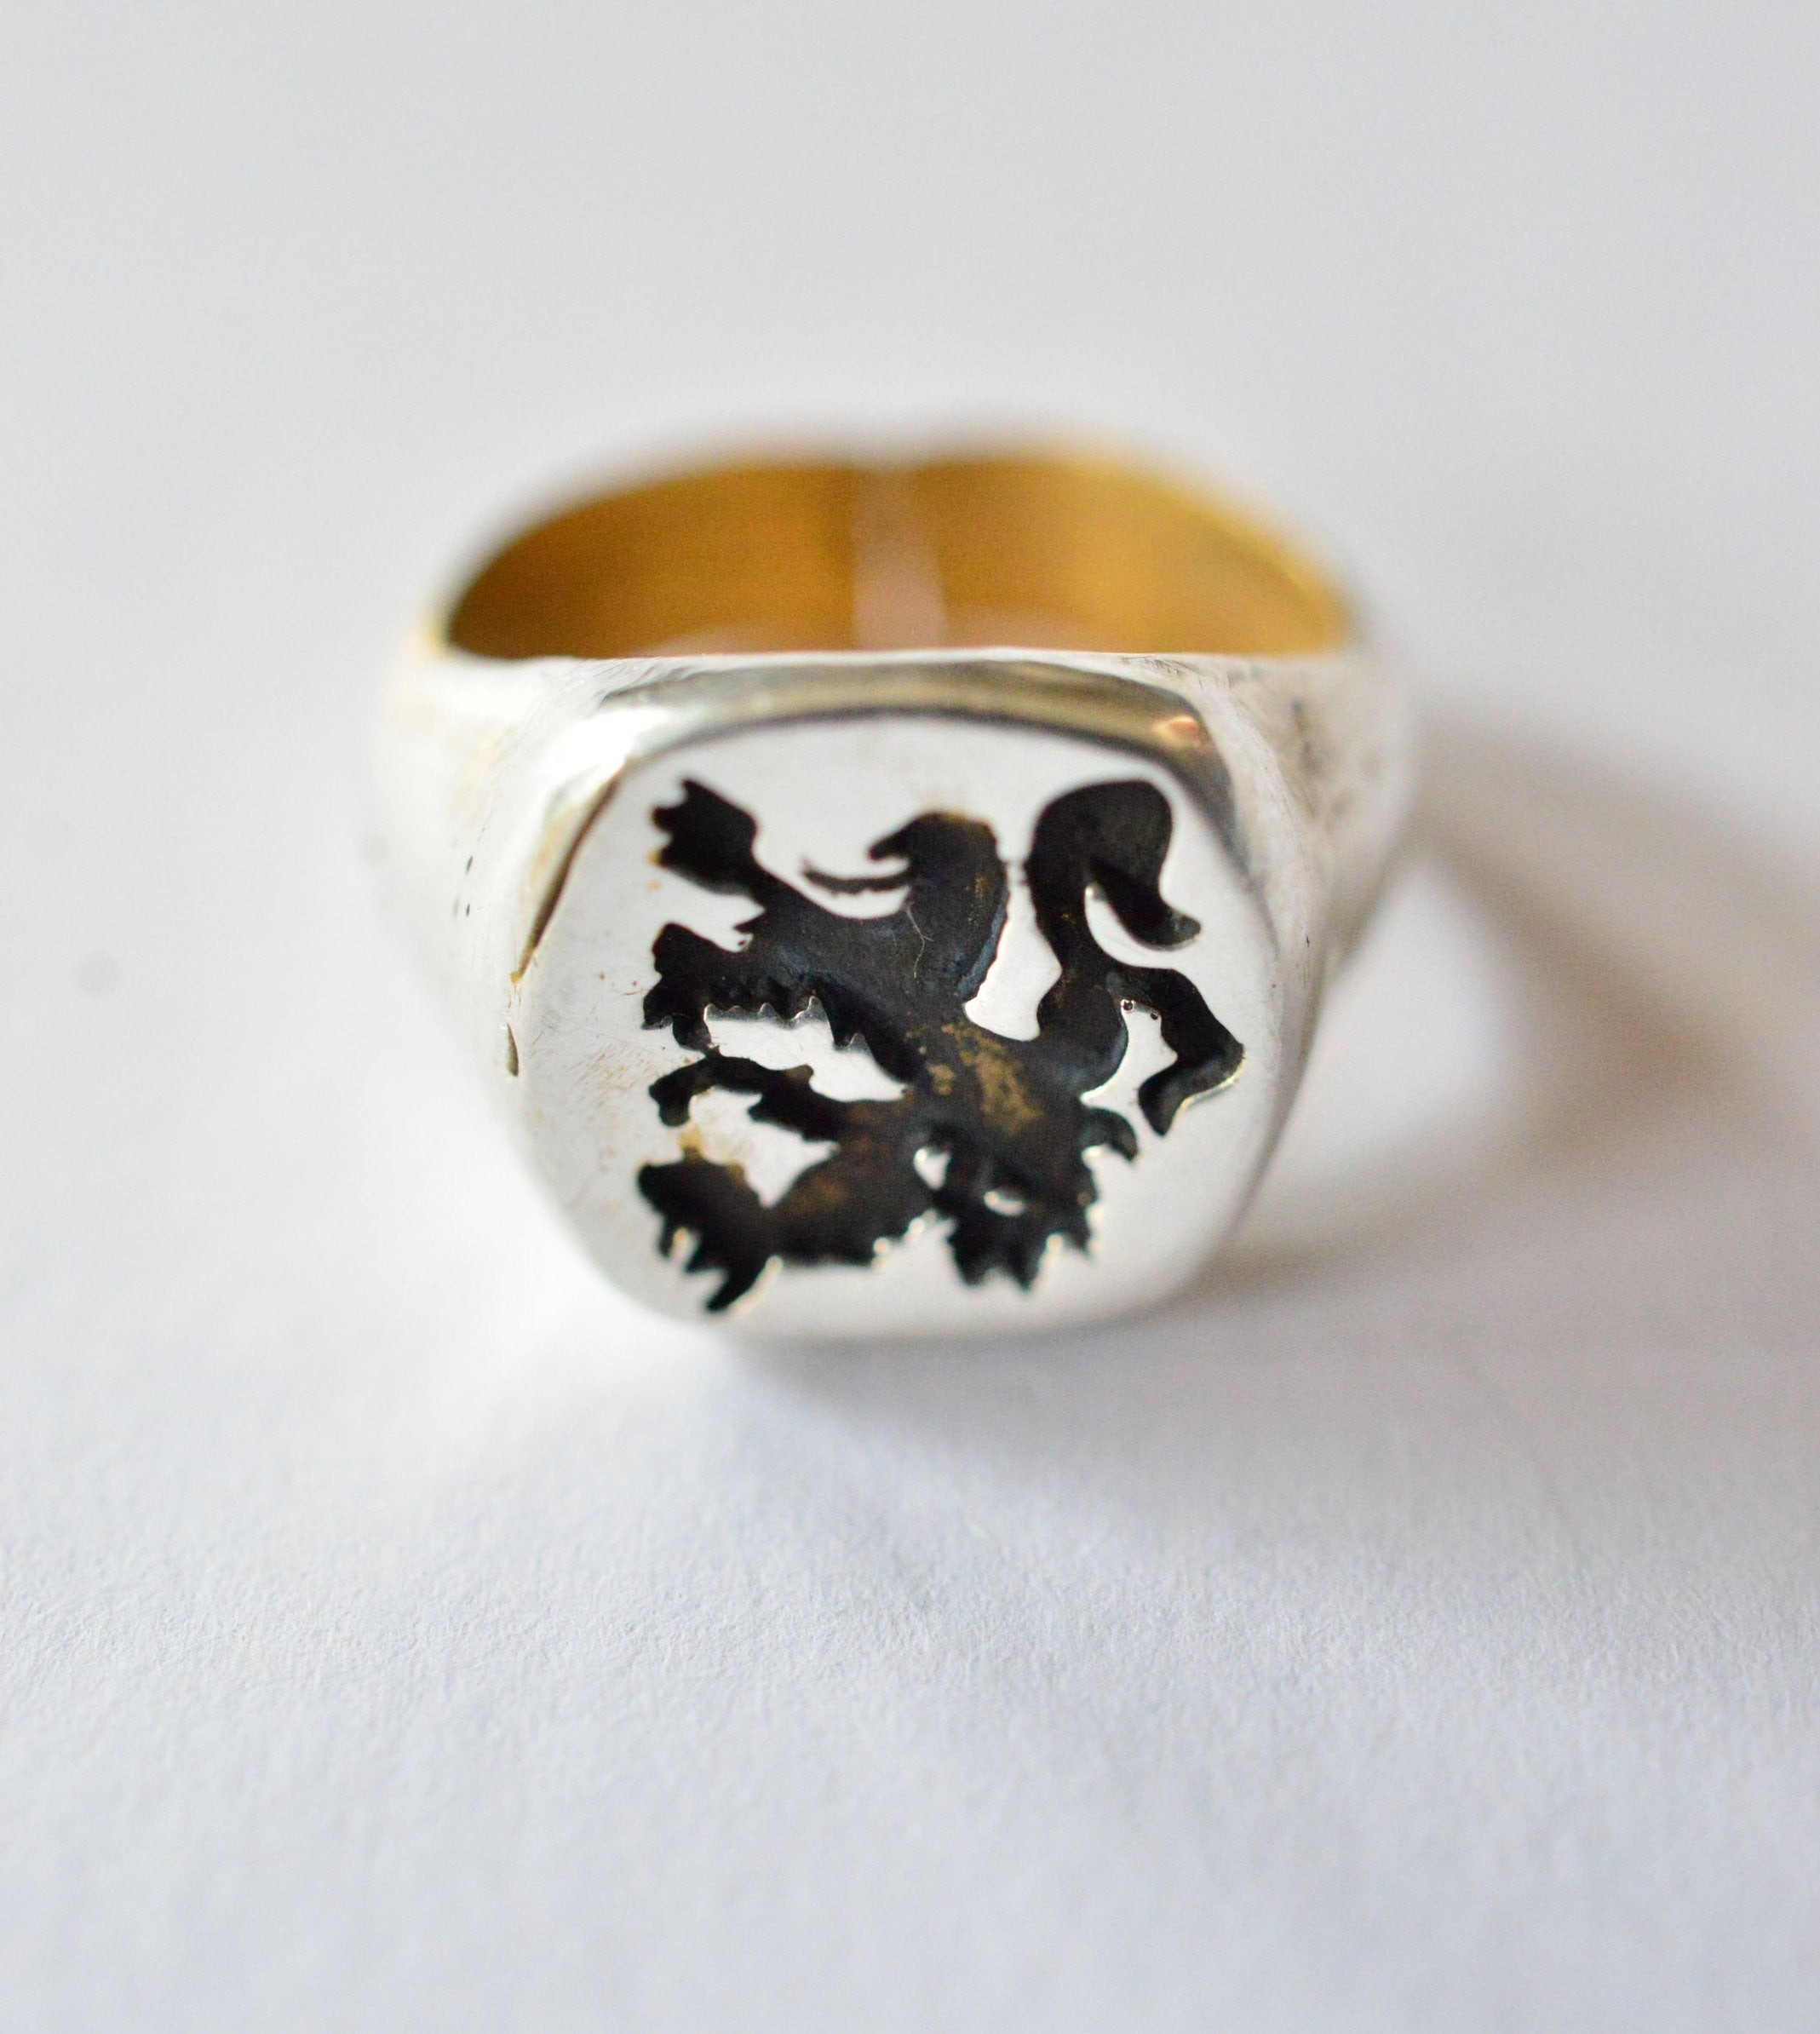 the brave ring